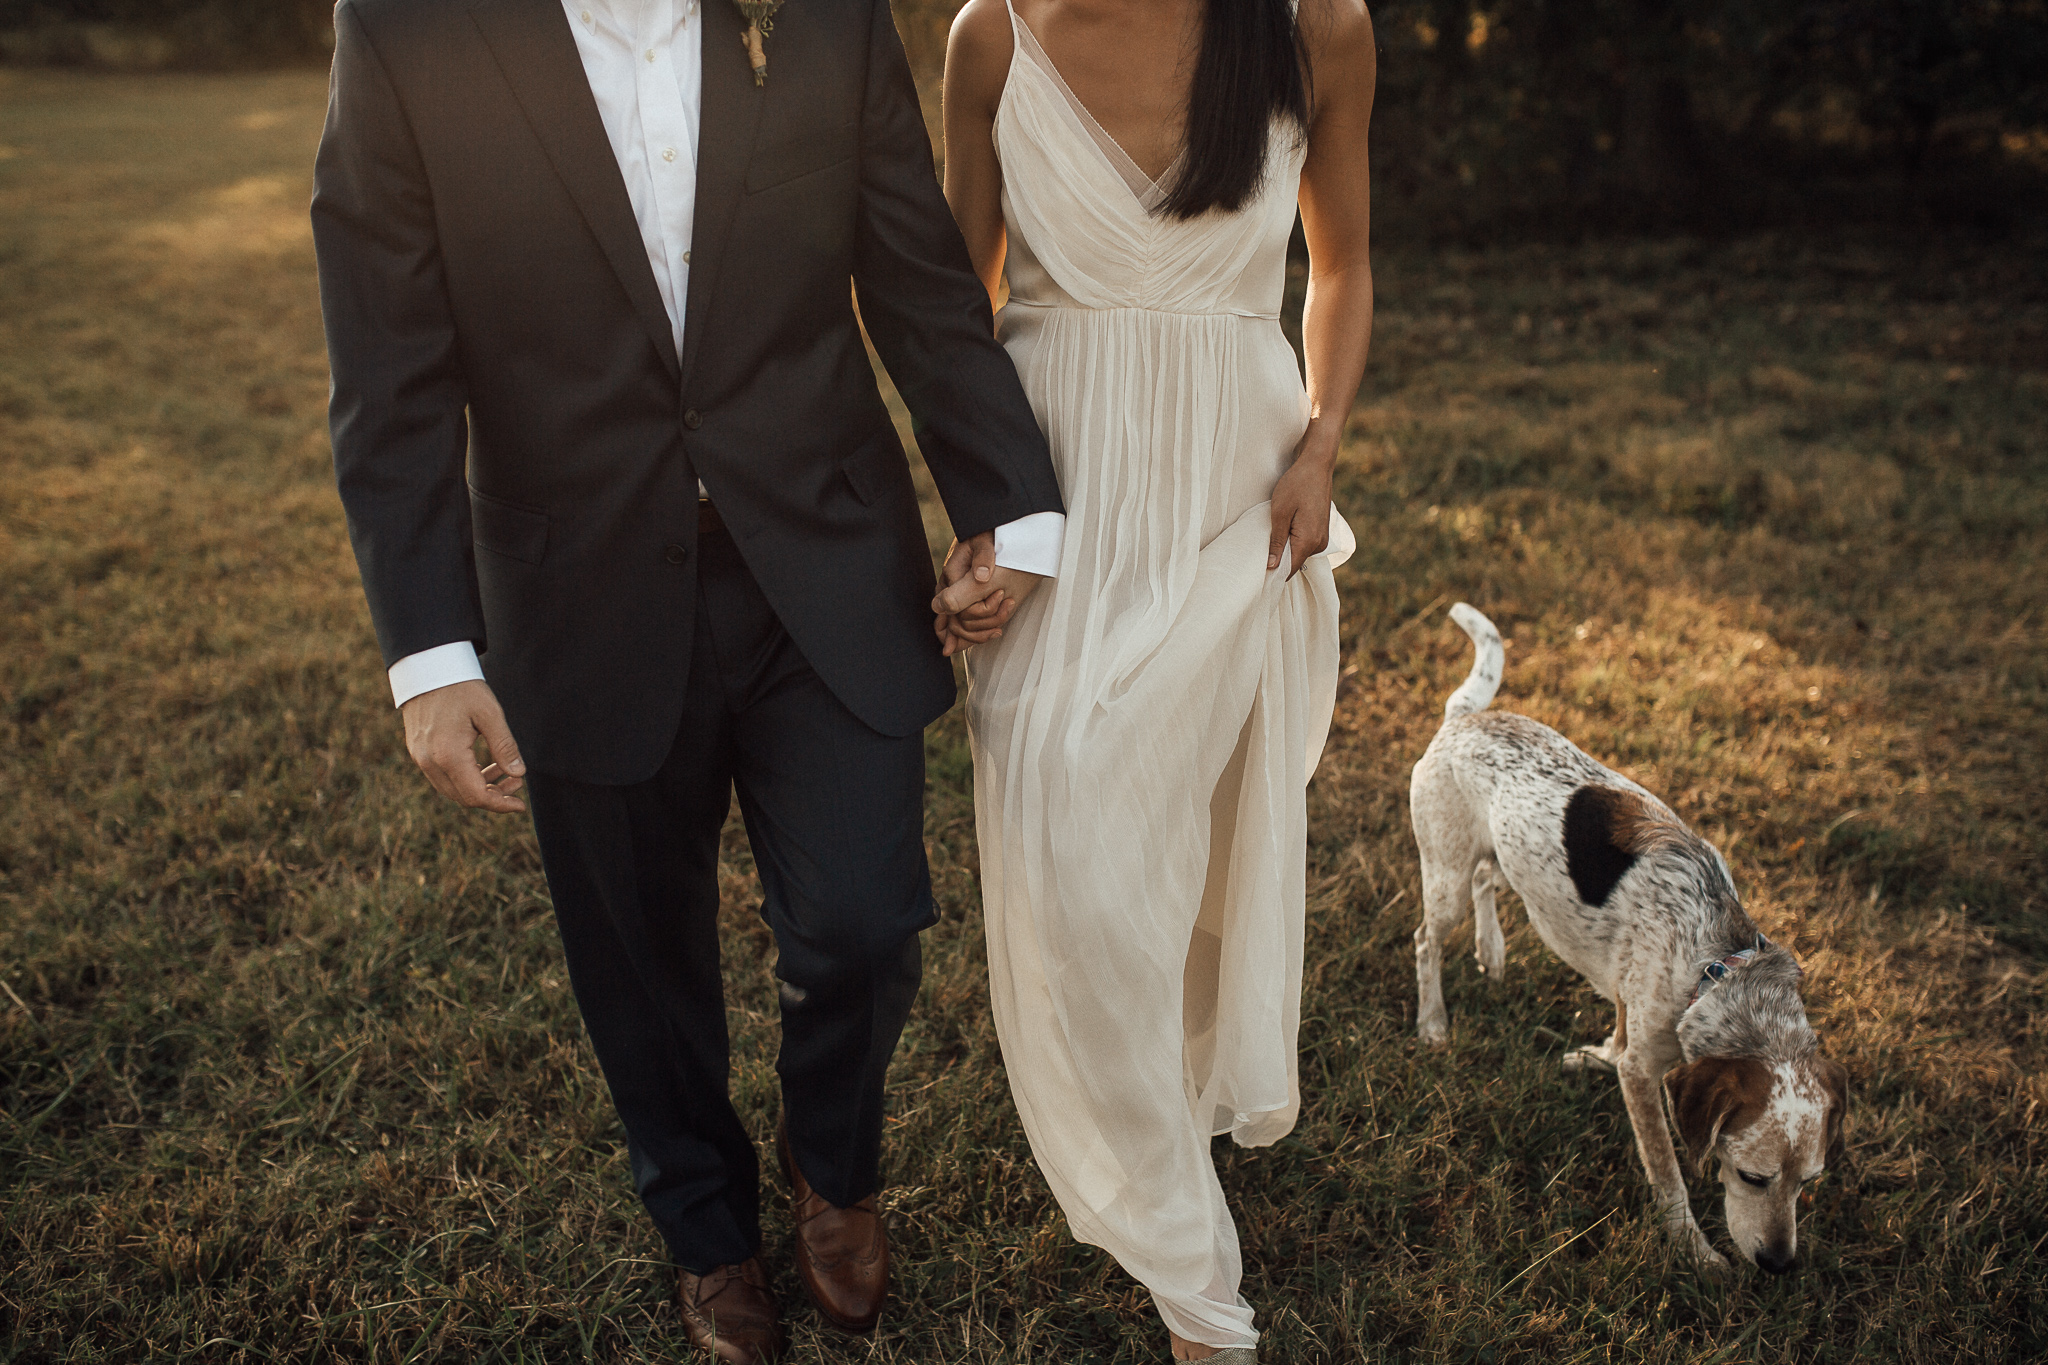 memphis-elopement-photographer-shelby-farms-shelby-farms-dog-park-cassie-cook-photography-28.jpg